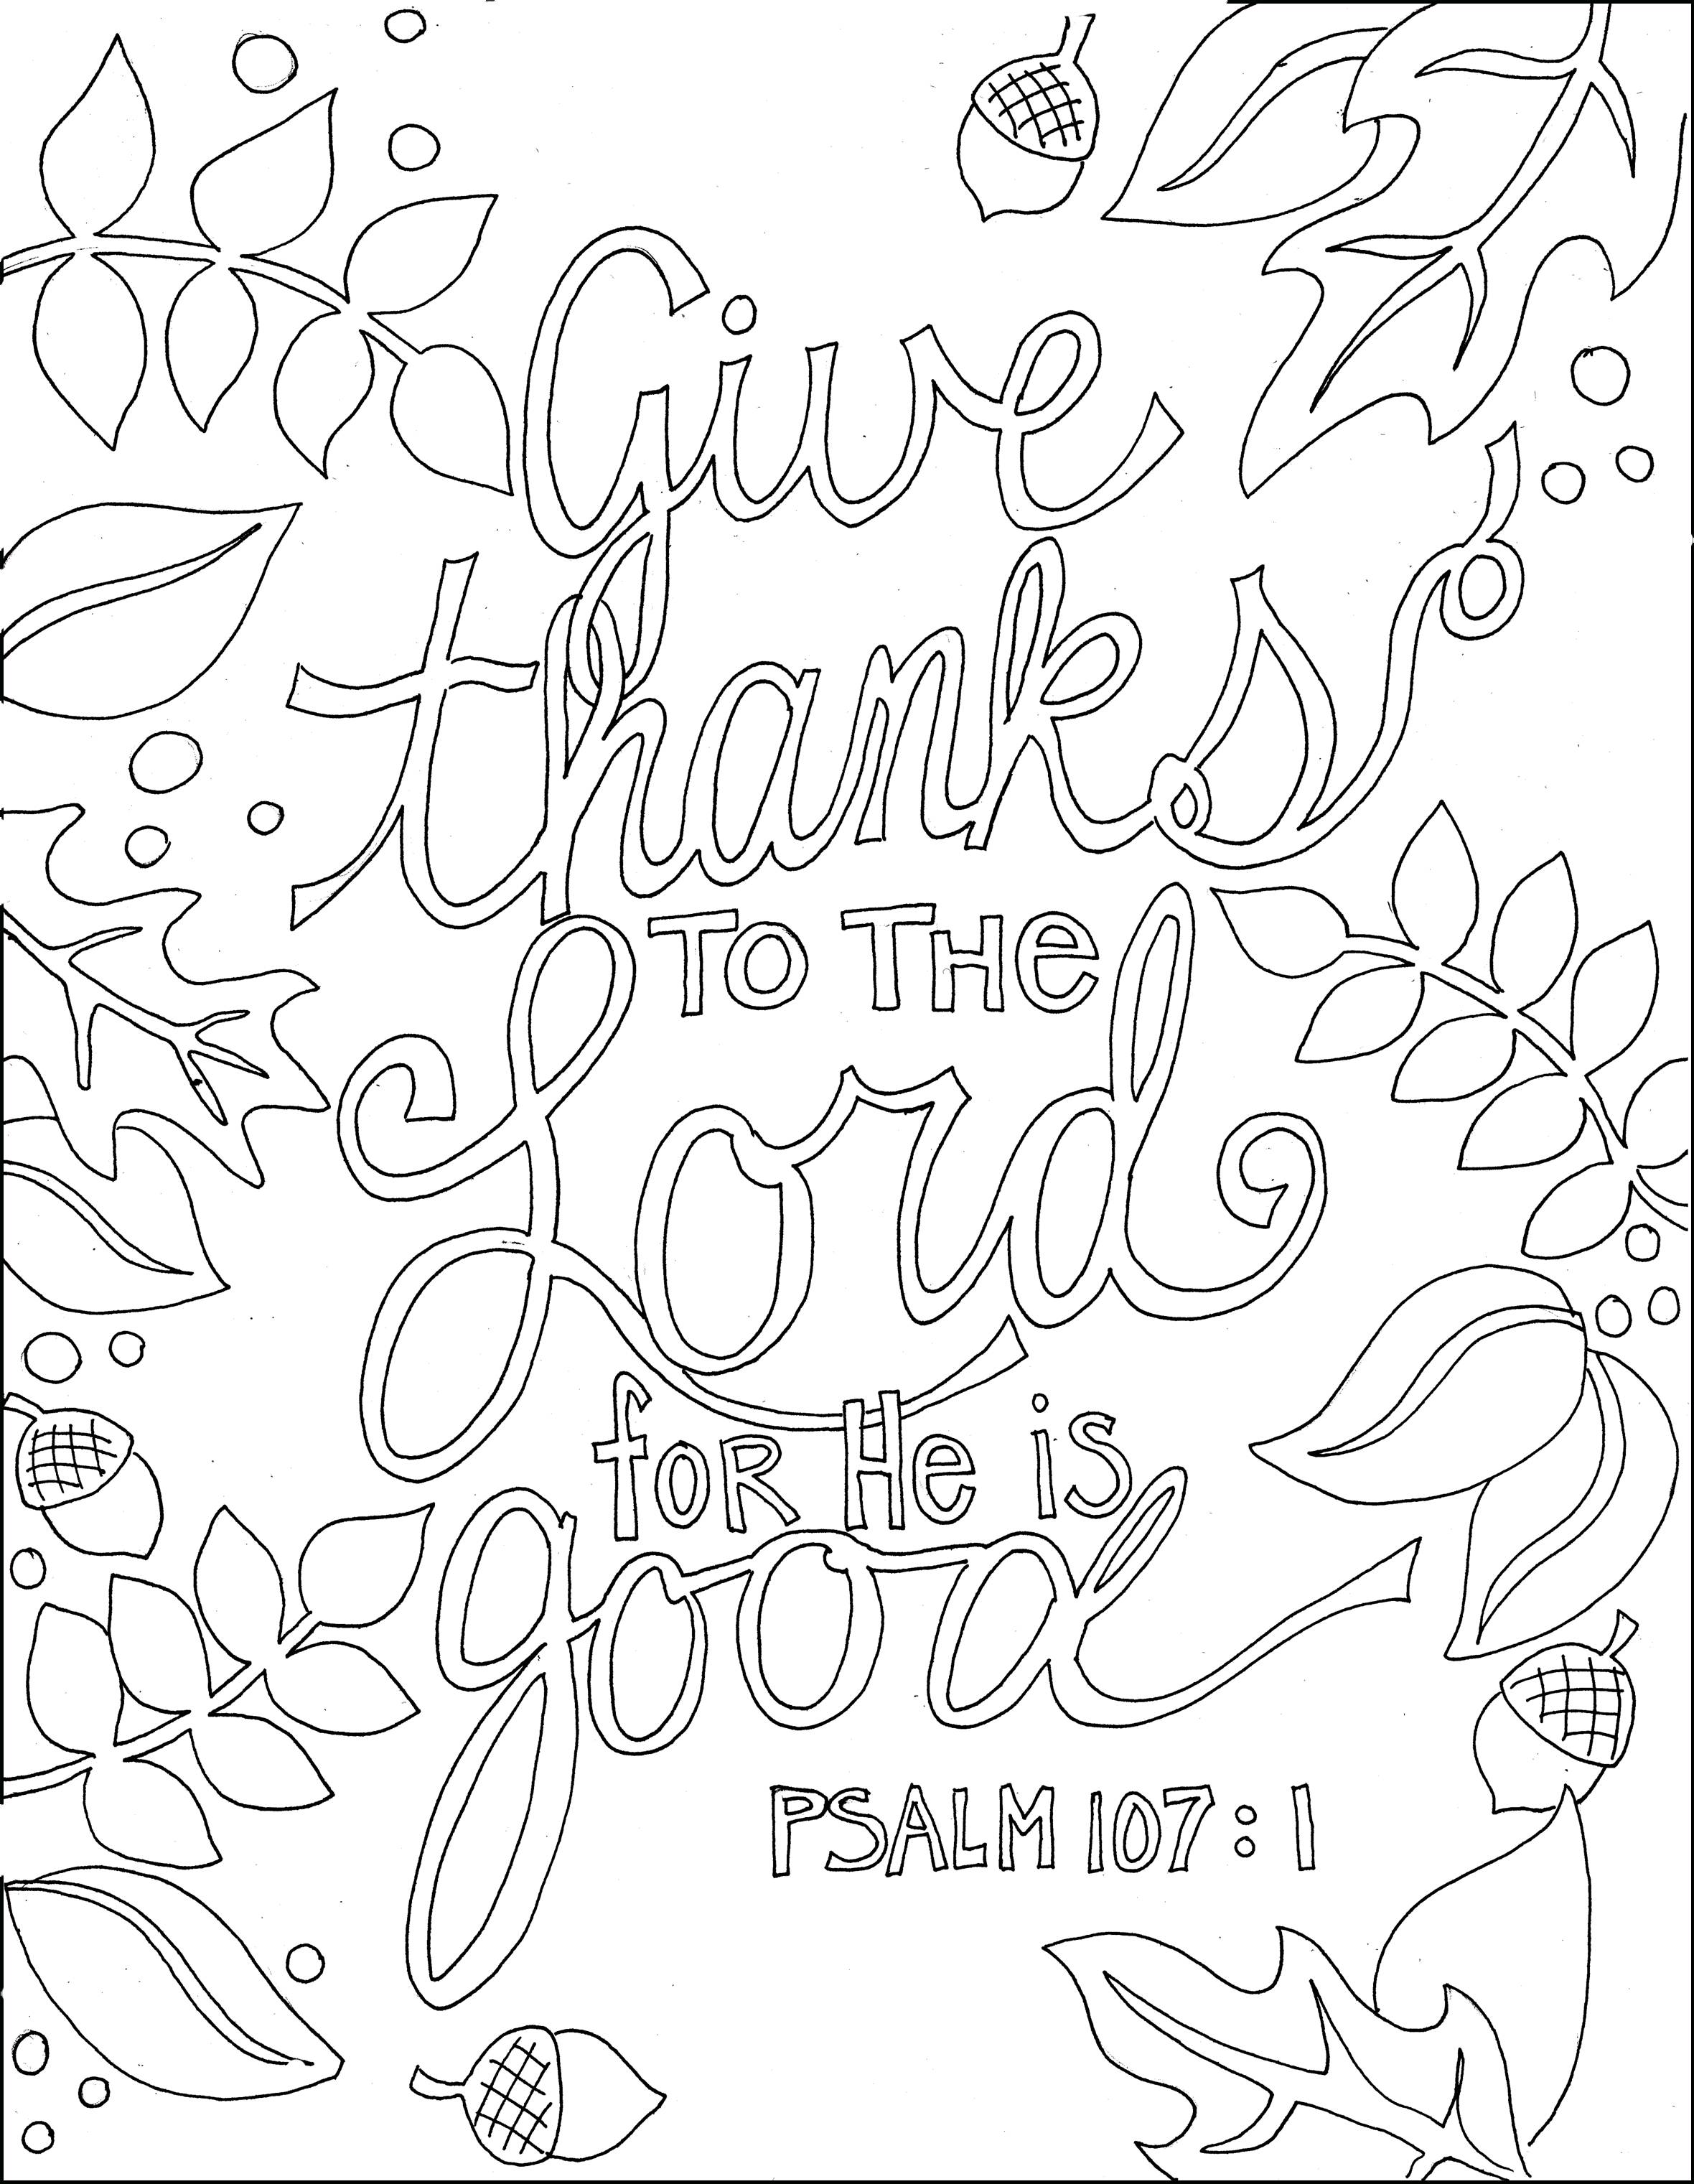 printable coloring bible verses matt 2237 love the lord your god with all your heart printable bible verses coloring